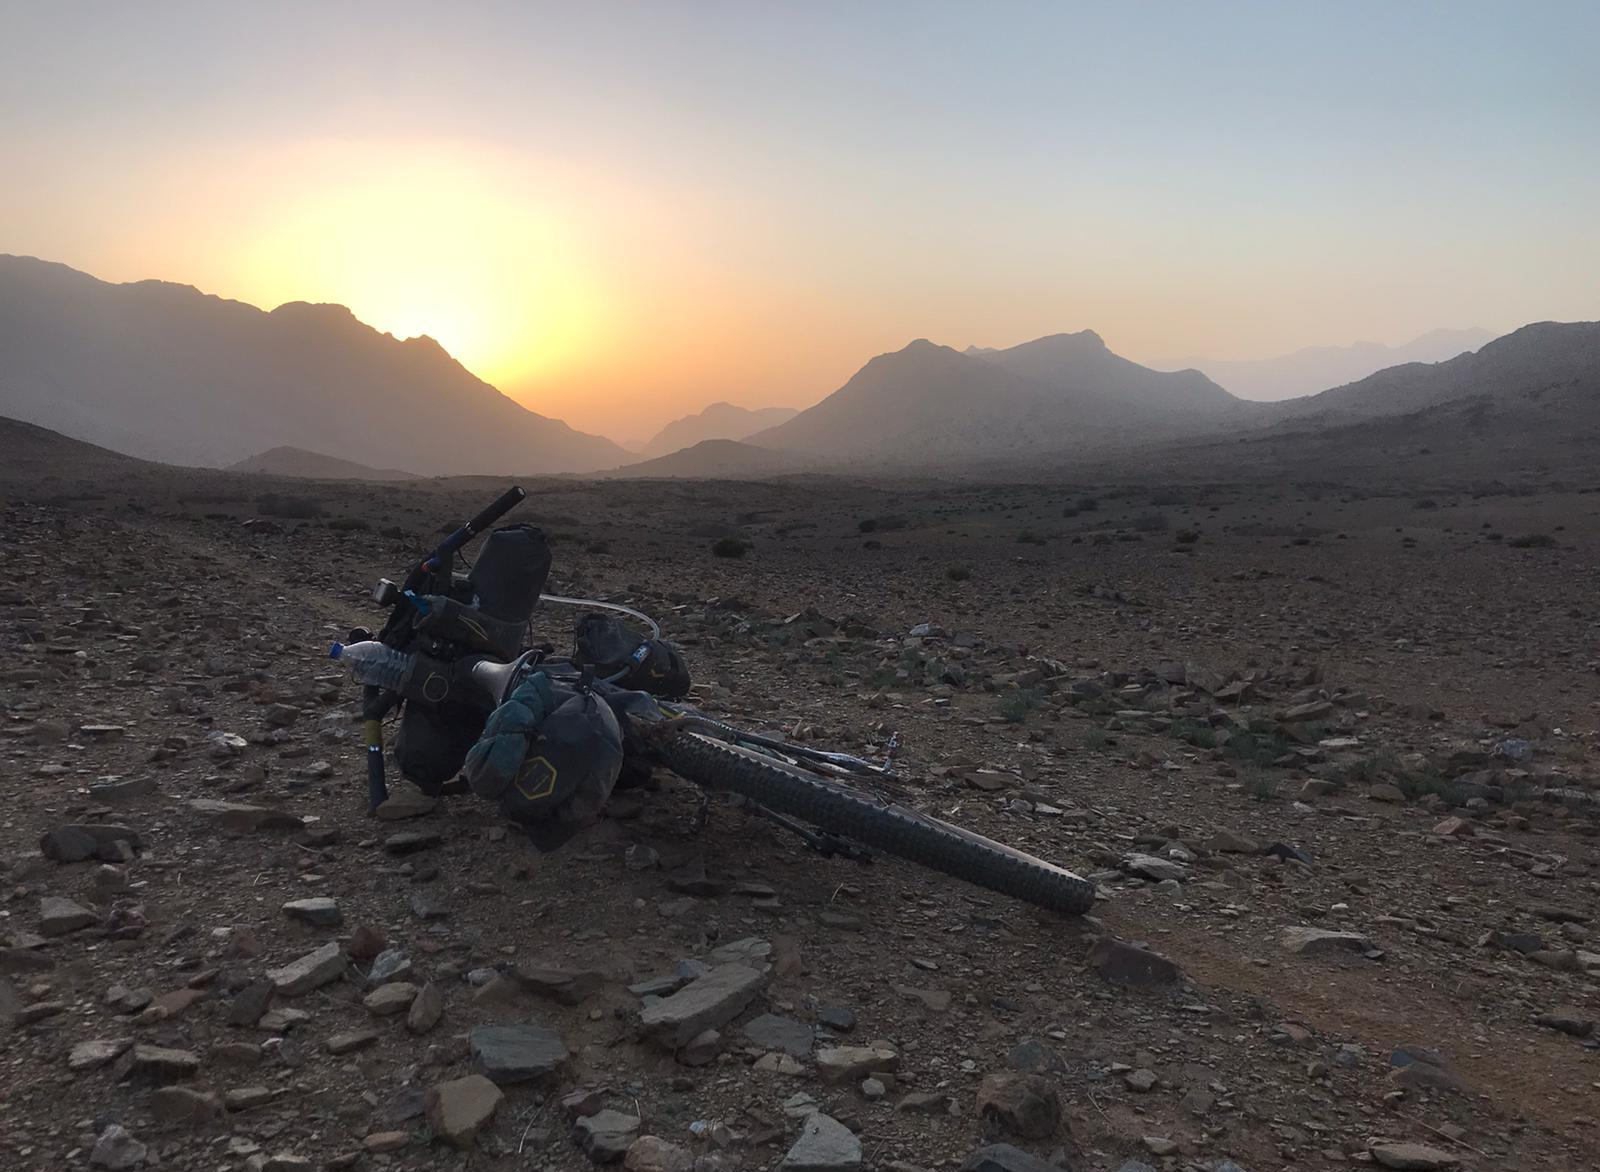 A bike with a full bikepacking equipment in the middle of a rocky dirt road